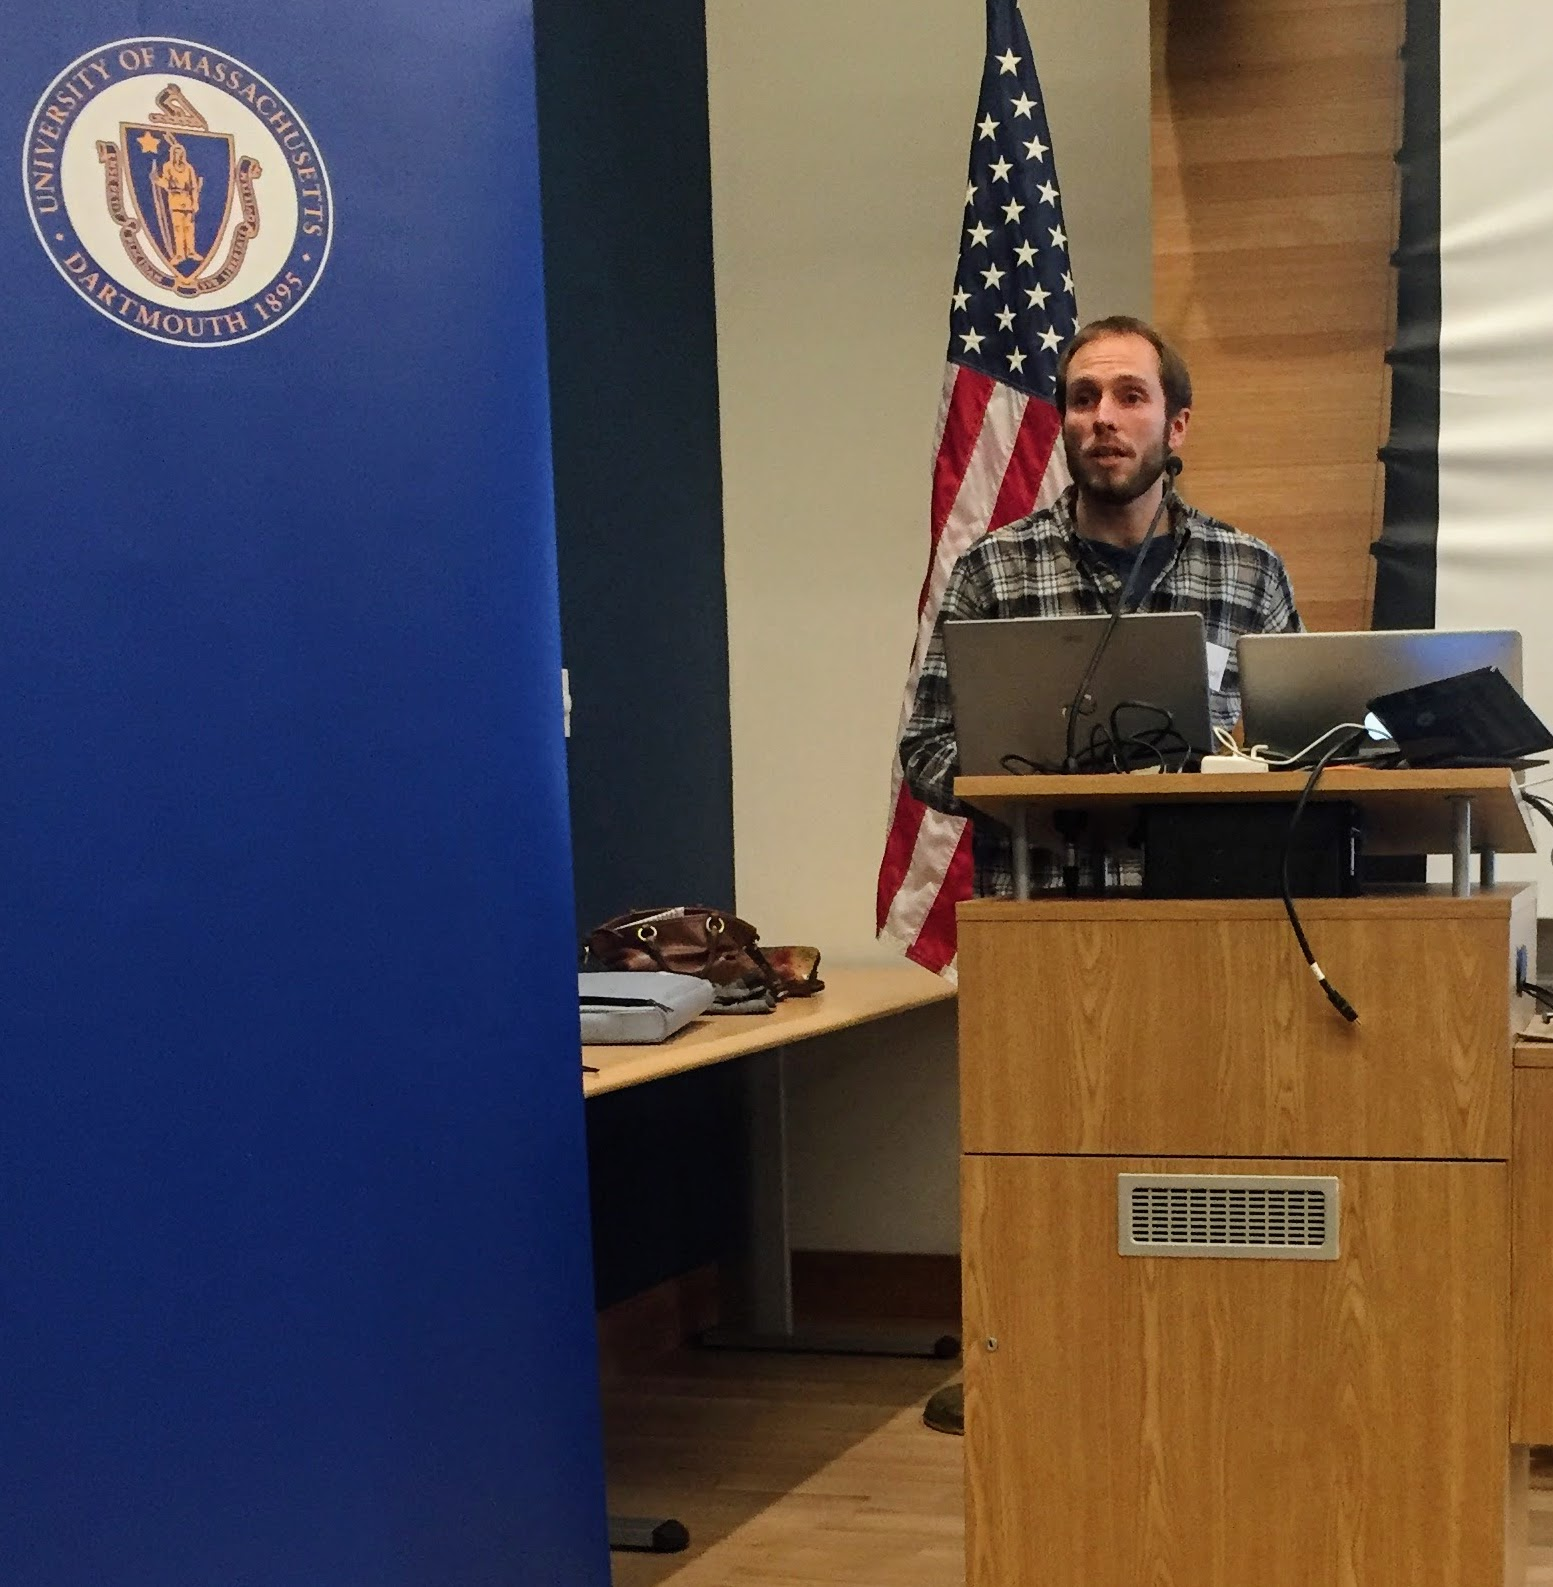 GROW's Adam Davenport, who also works with Terra Cura, Inc., speaks on The Future of Urban Agriculture in New Bedford.